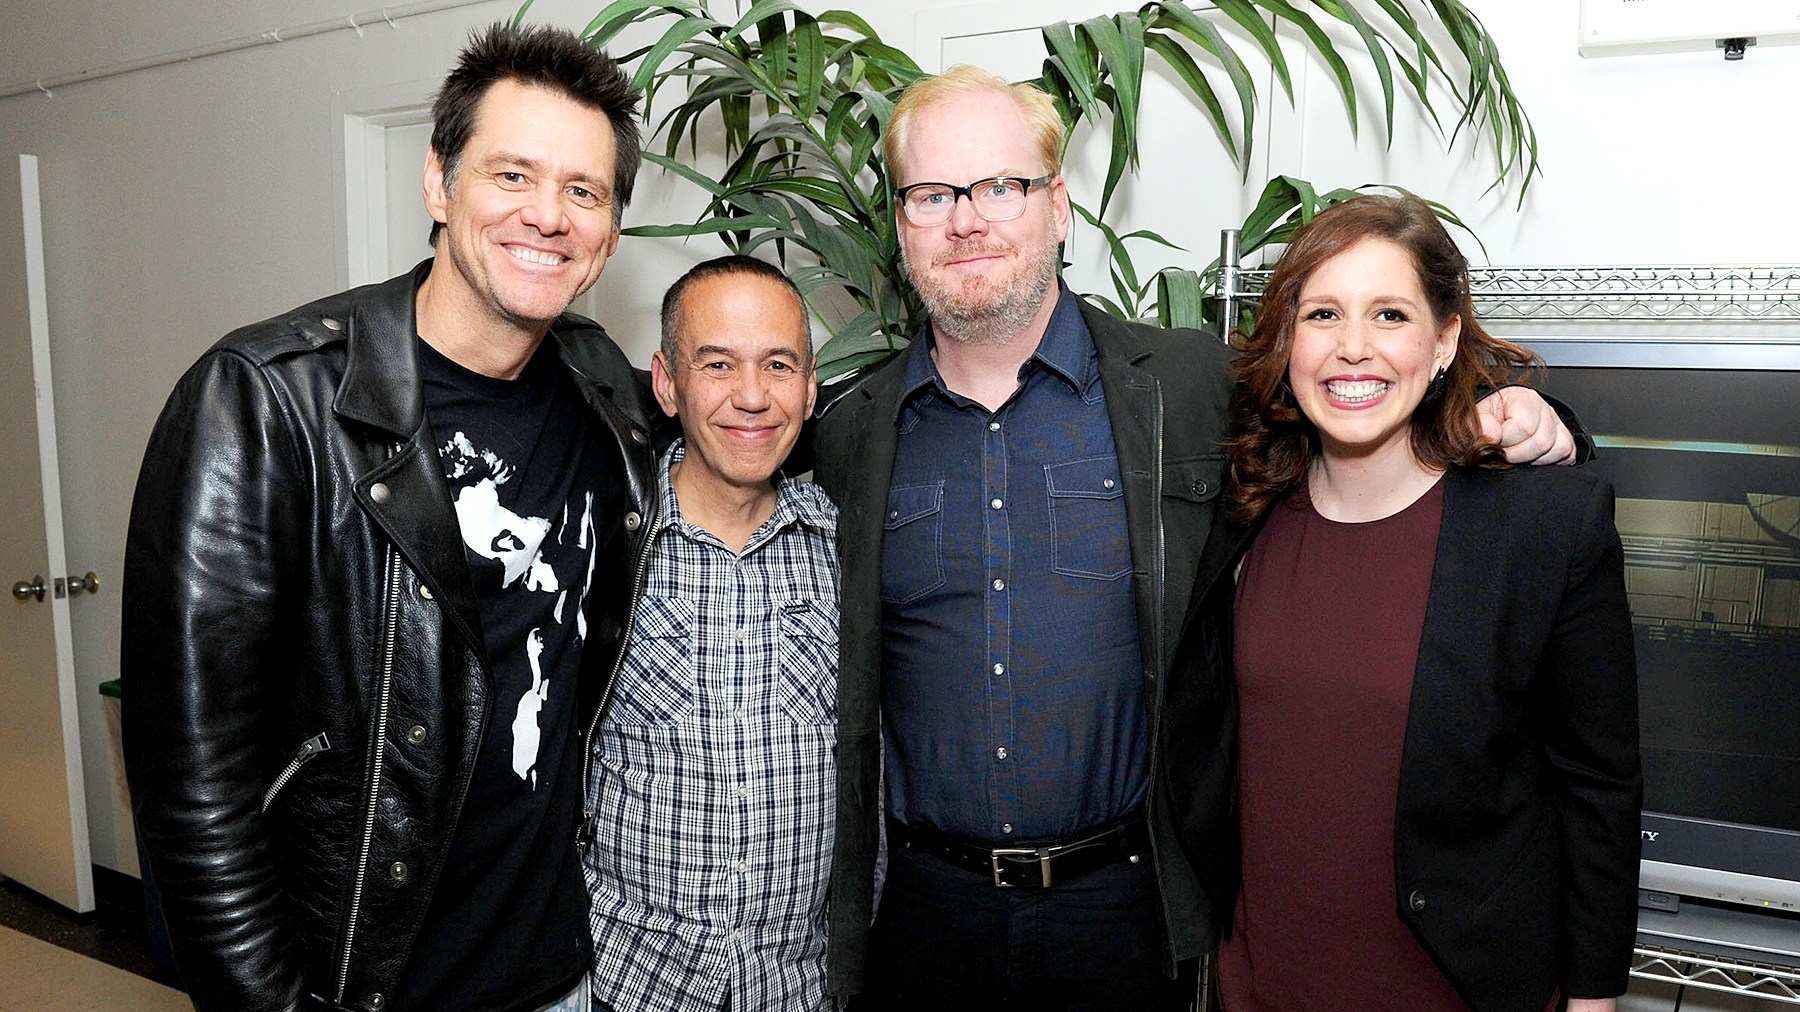 Jim Carrey with Gilbert Gottfried, Jim Gaffigan and Vanessa Bayer (from left) in NYC.